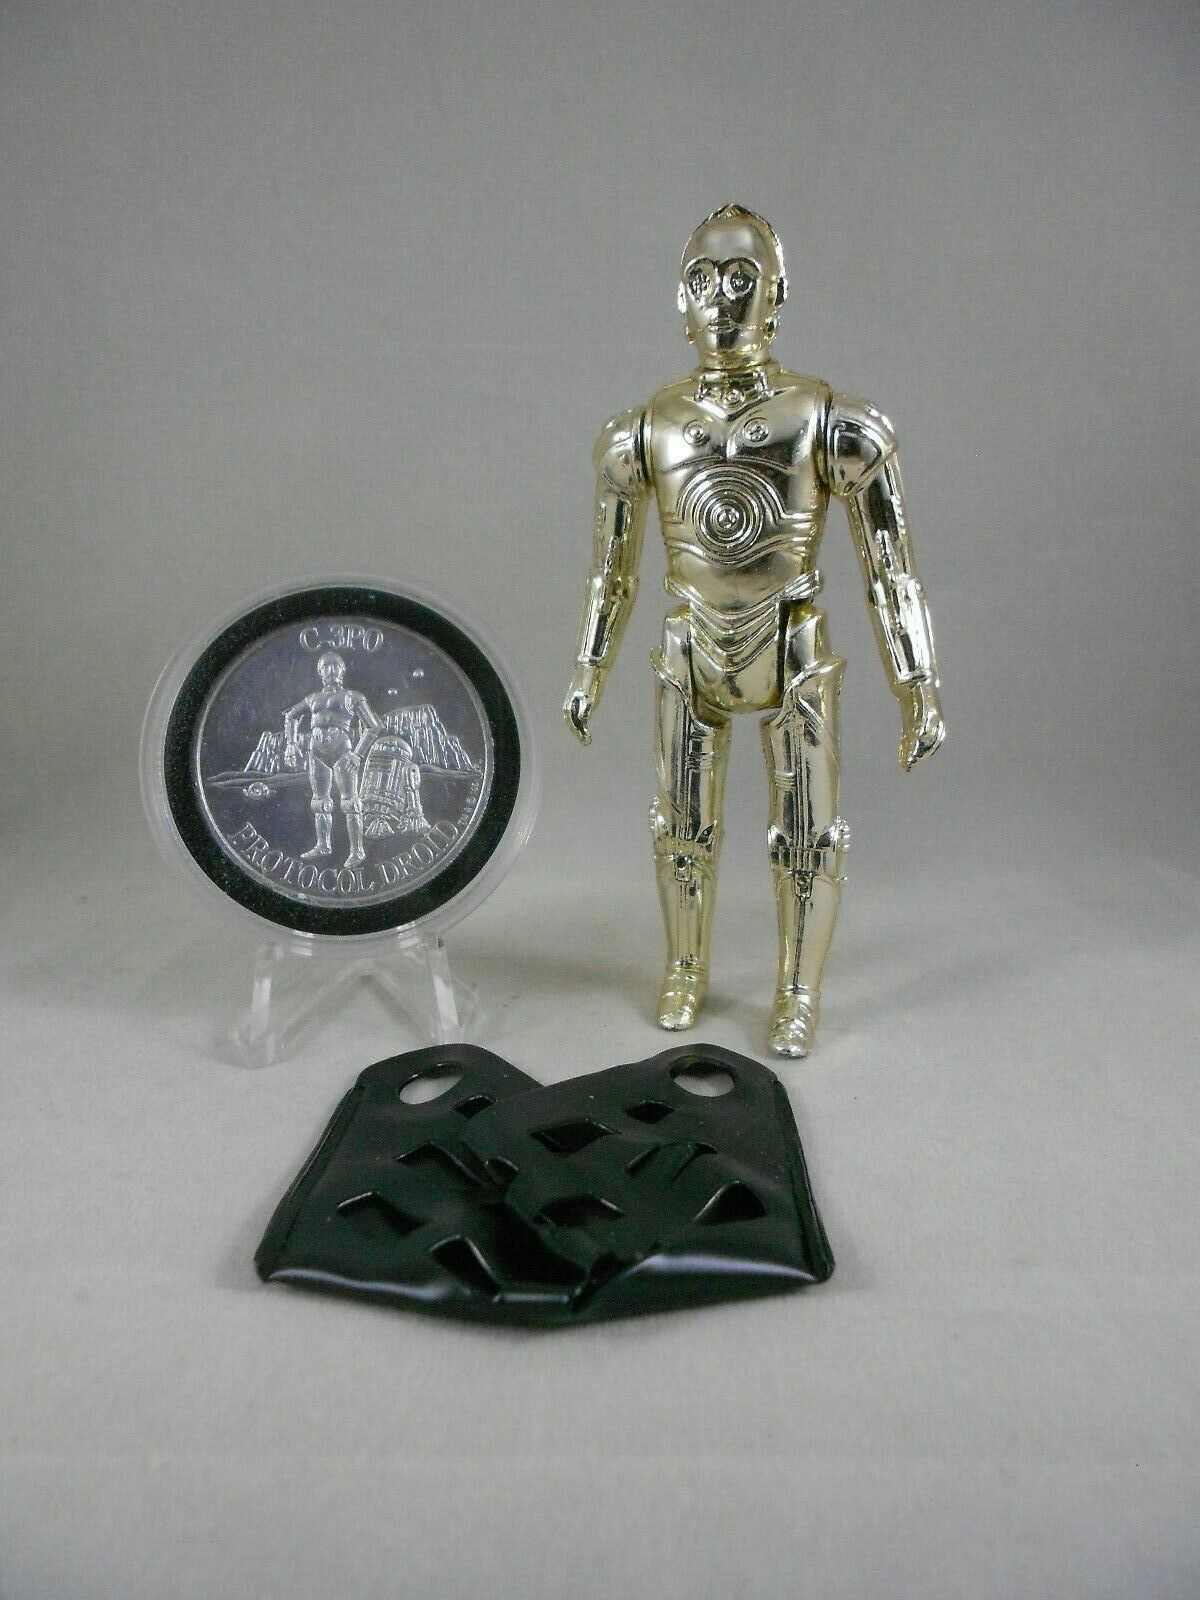 Vintage Star Wars 1982 - C-3PO Remove Limbs - N Mint Complete w 1985 POTF Coin